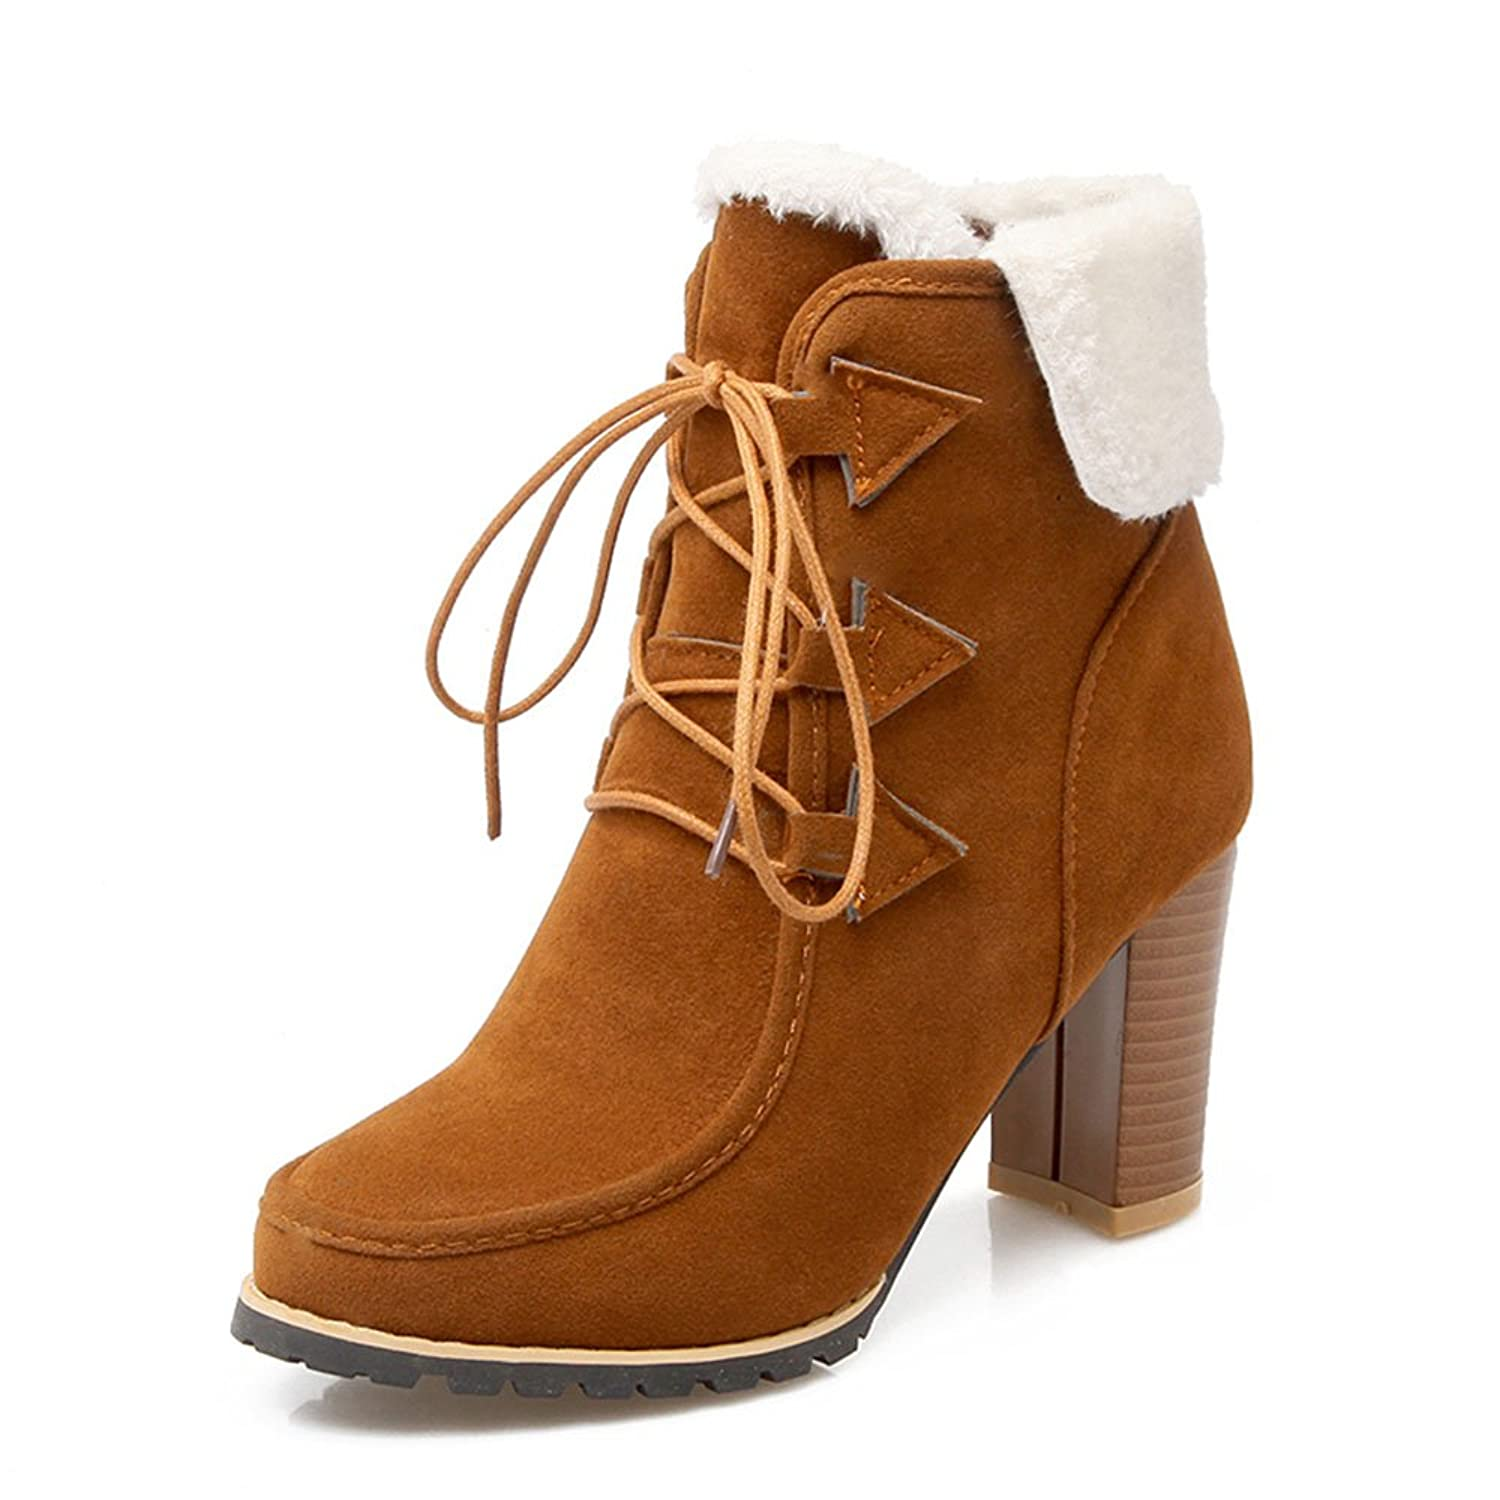 2016 Women New High Heel Suede Ankle Boots Winter Warm Lace Up Block Heel Boots